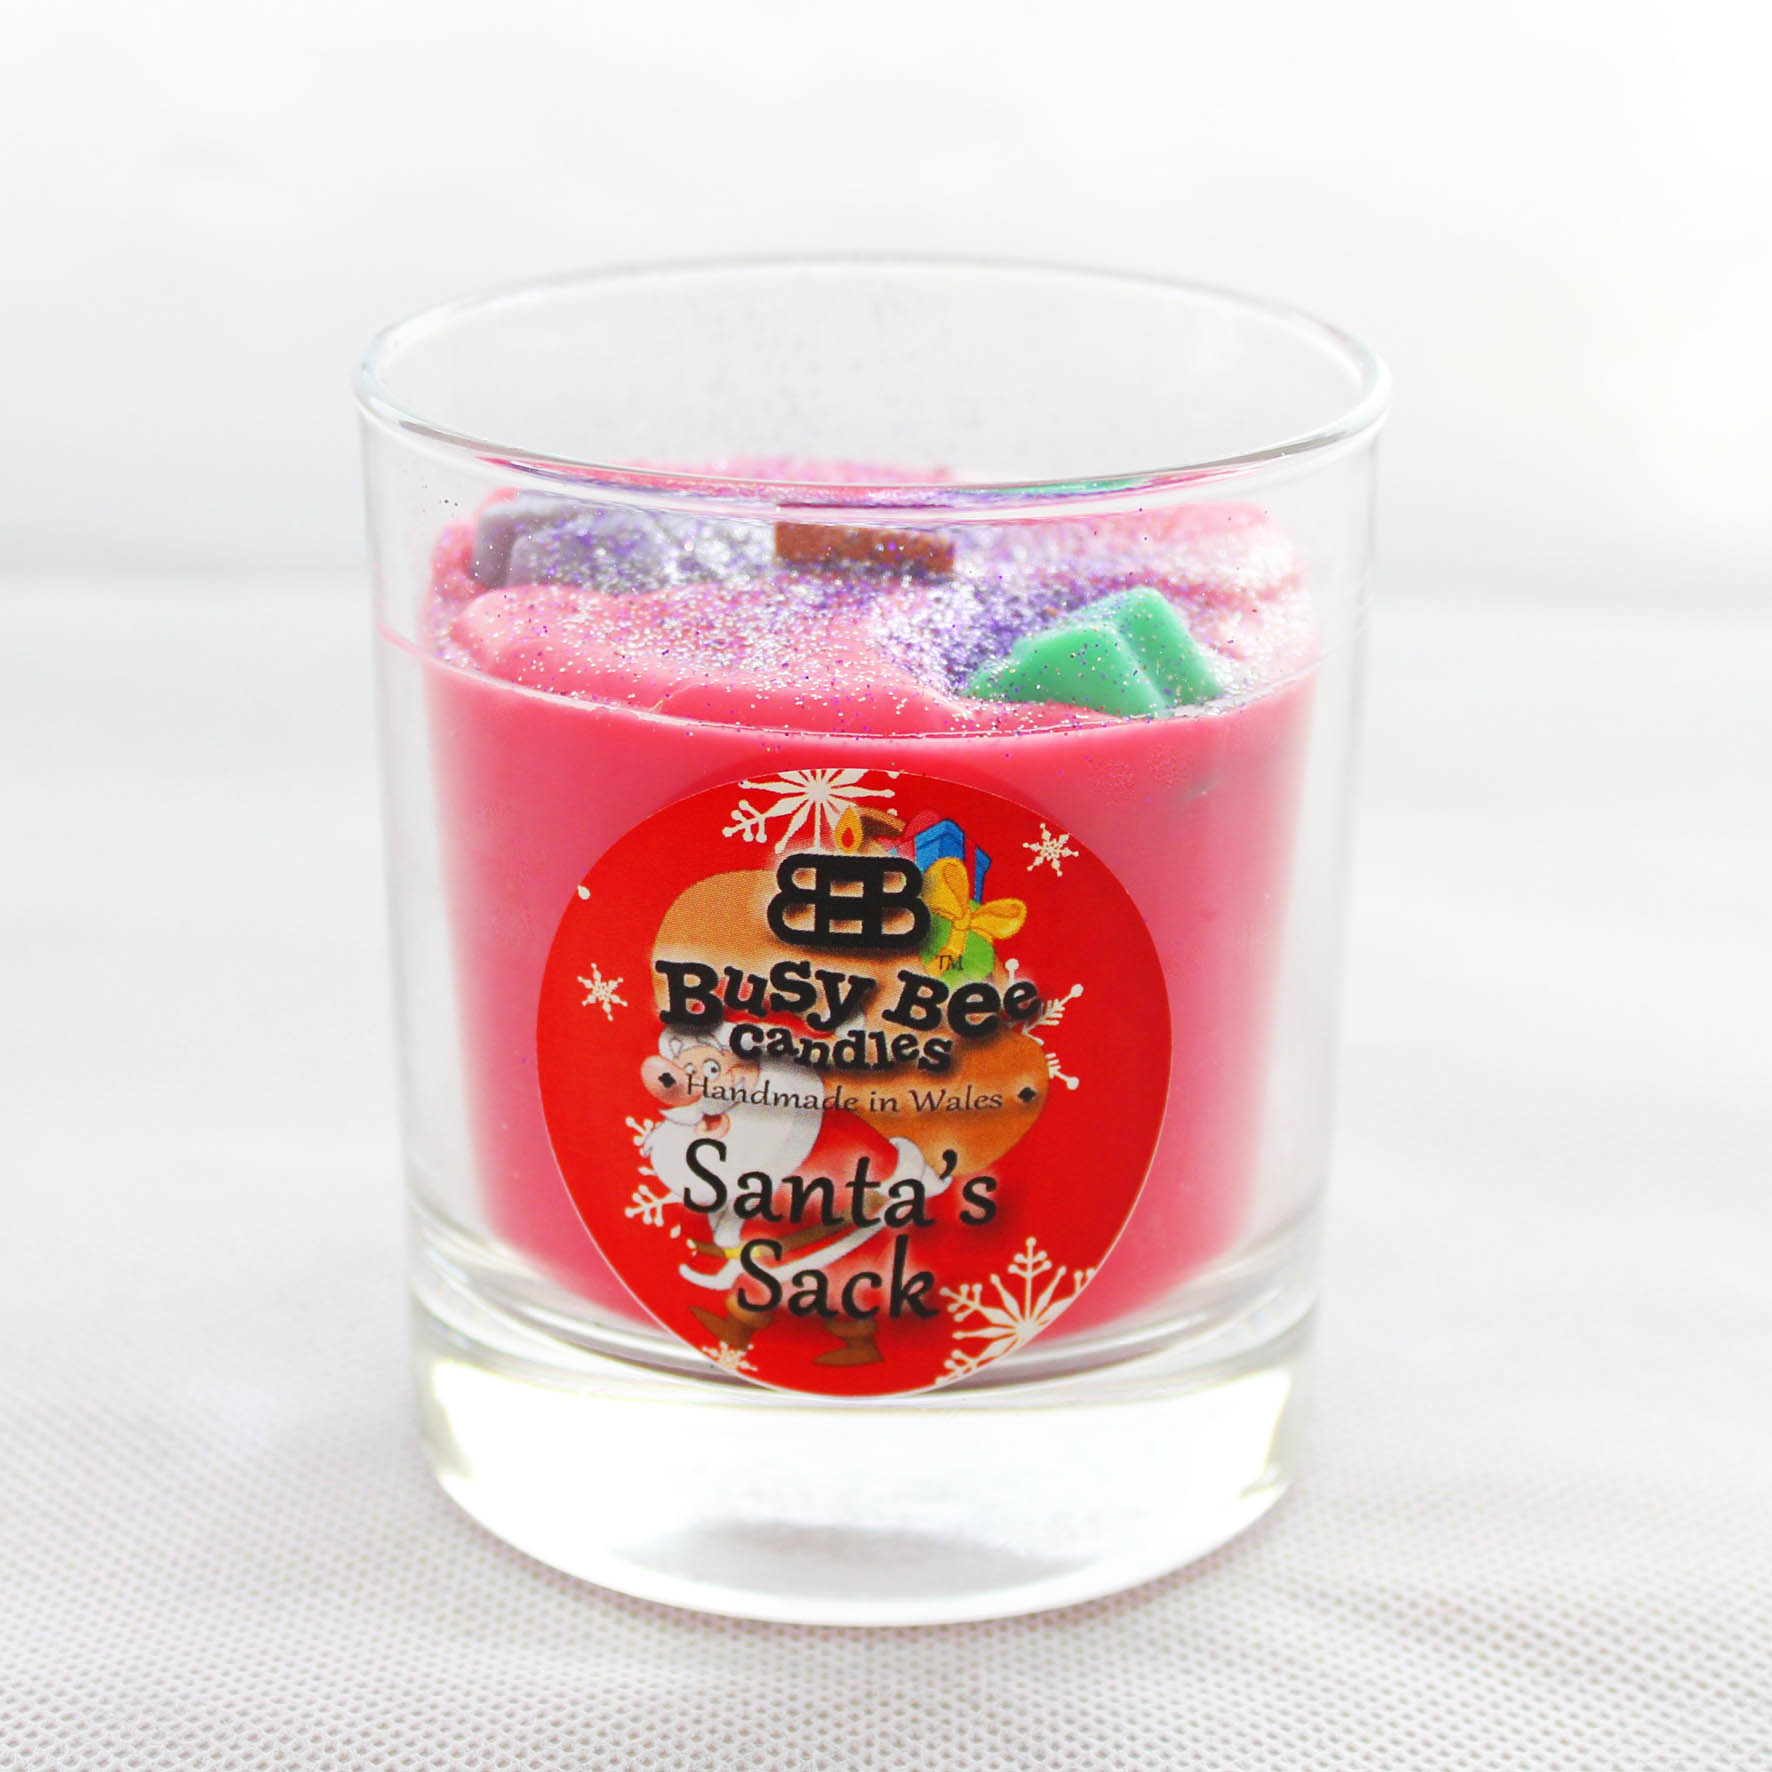 Santa's Sack Christmas Crackling Wick Scented Candle